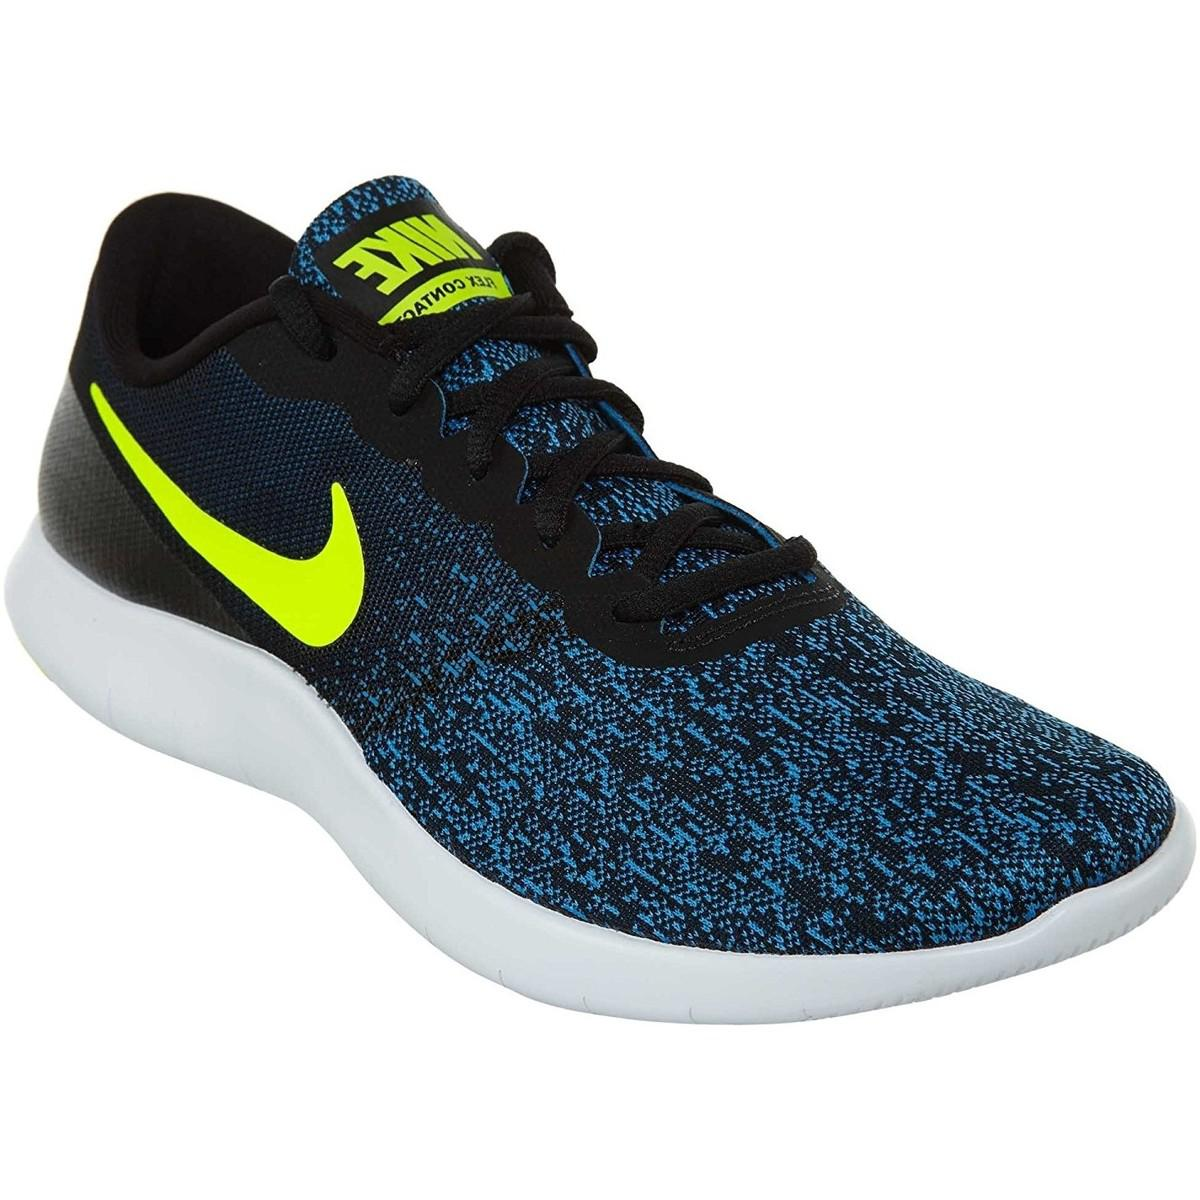 b137c1dc9f2a Nike Flex Contact Running Shoe Women s Shoes (trainers) In Blue in ...